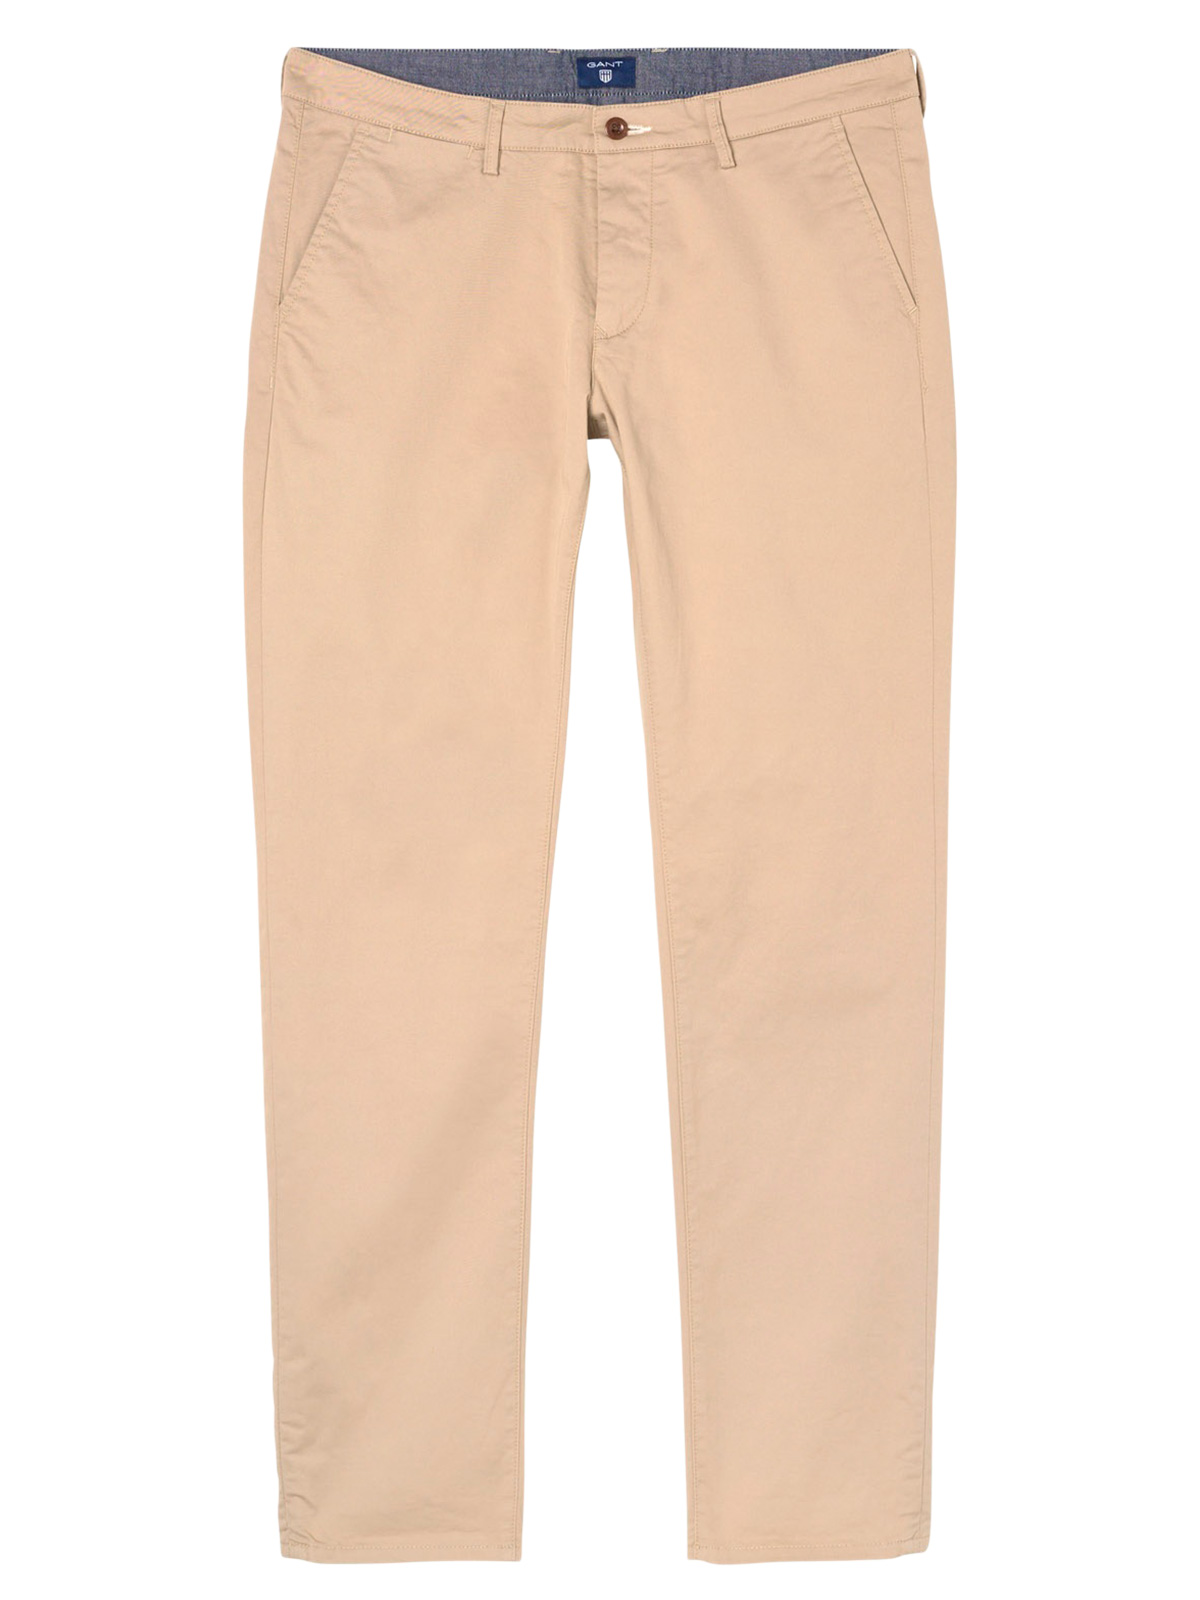 Picture of GANT | Men's Twill Chinos